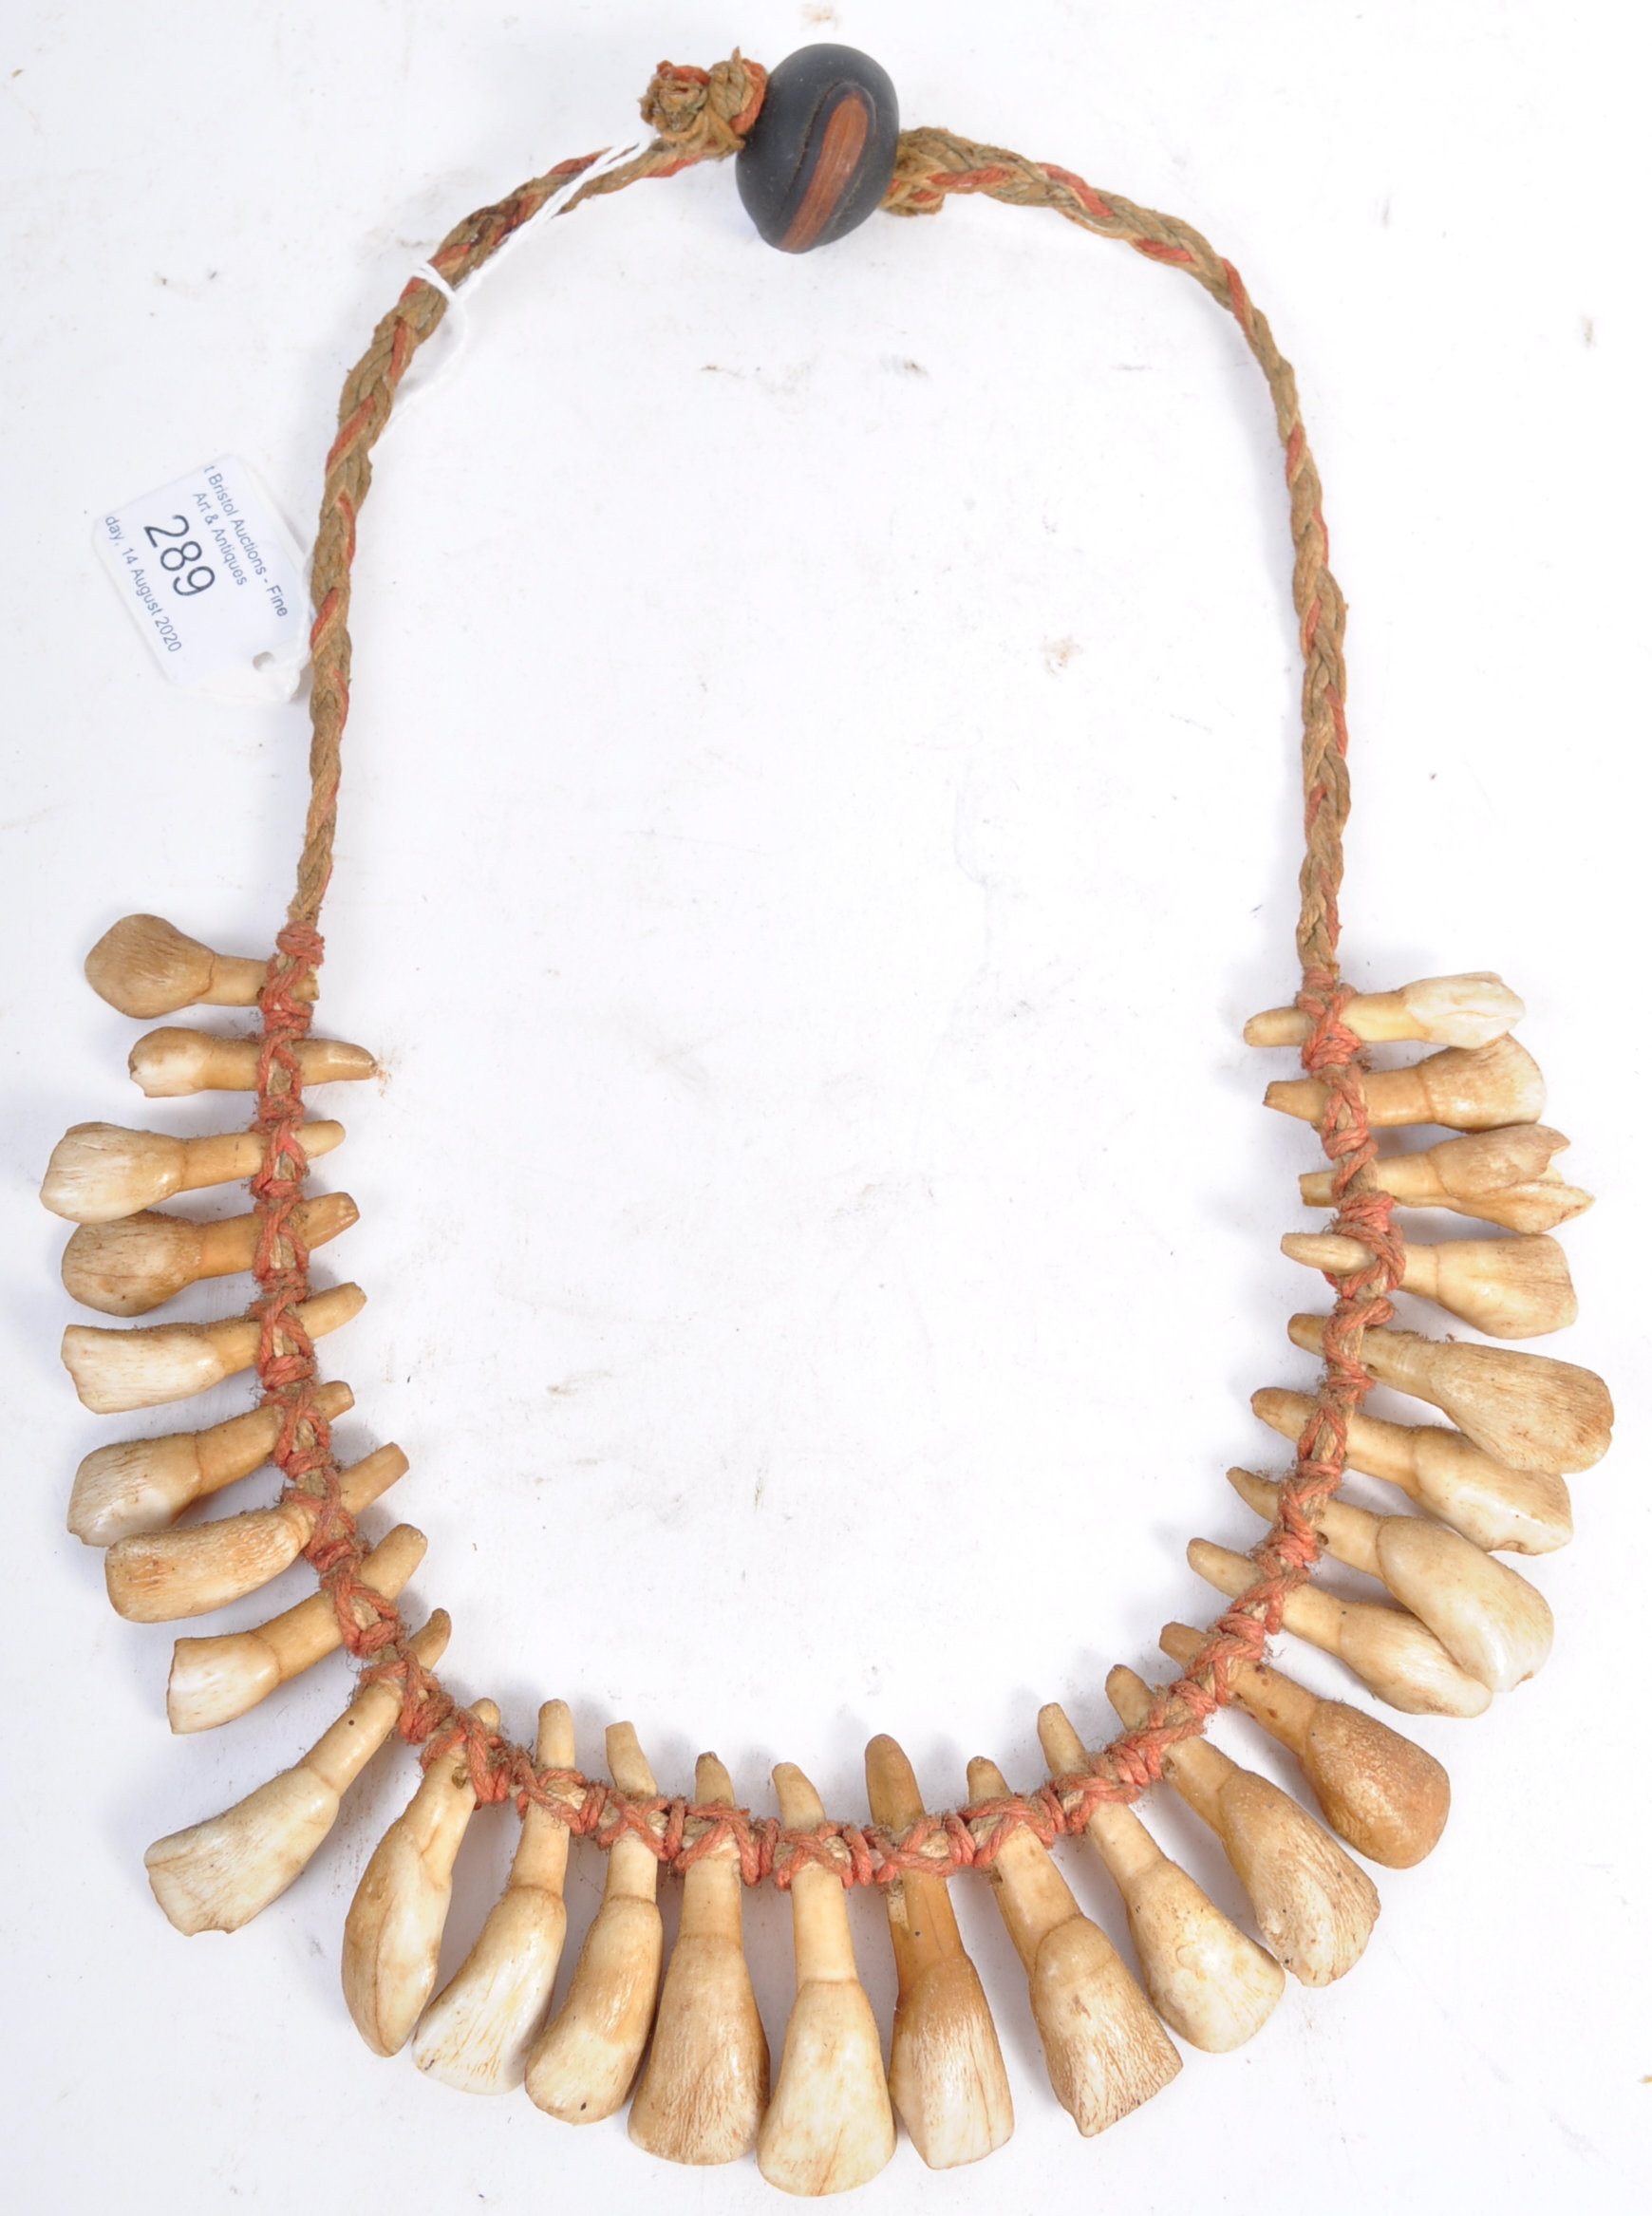 Lot 289 - TRIBAL ANTIQUITIES - 19TH CENTURY AFRICAN TOOTH NECKLACE